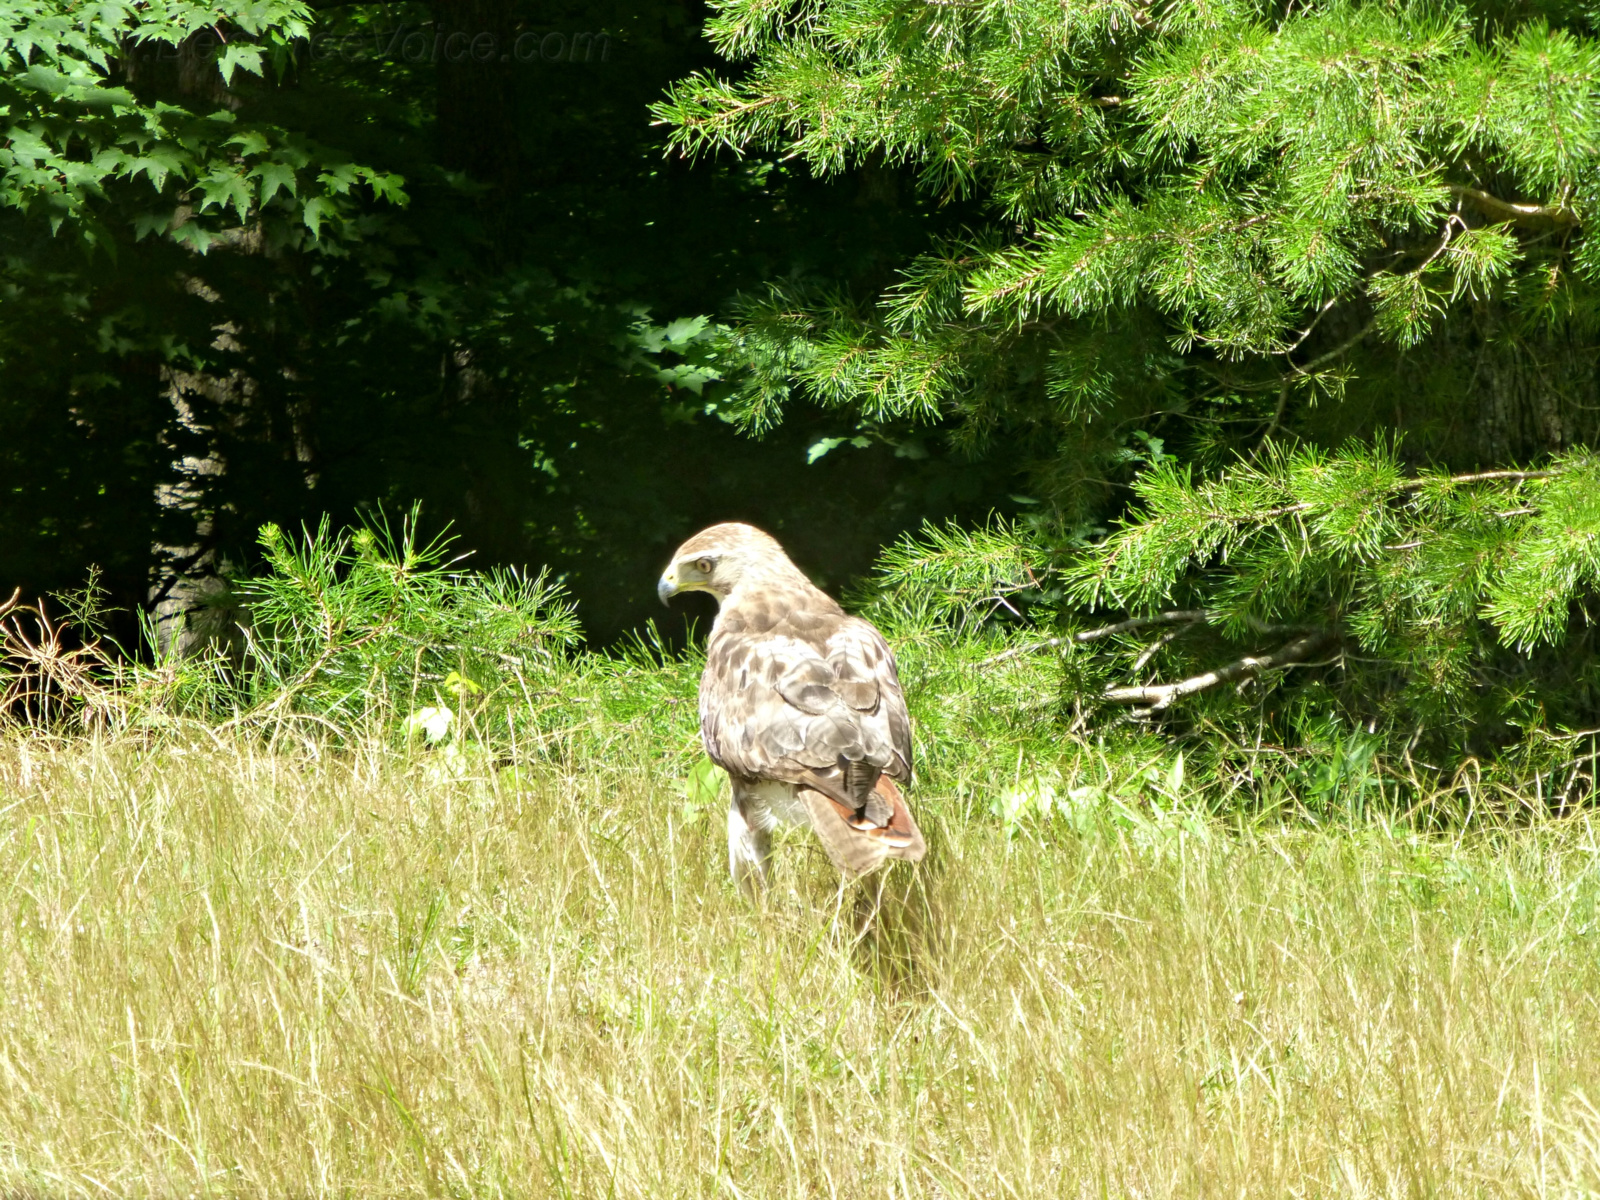 June 22, 2018 - Hawk on Hole 8, Bent Tree Golf Course